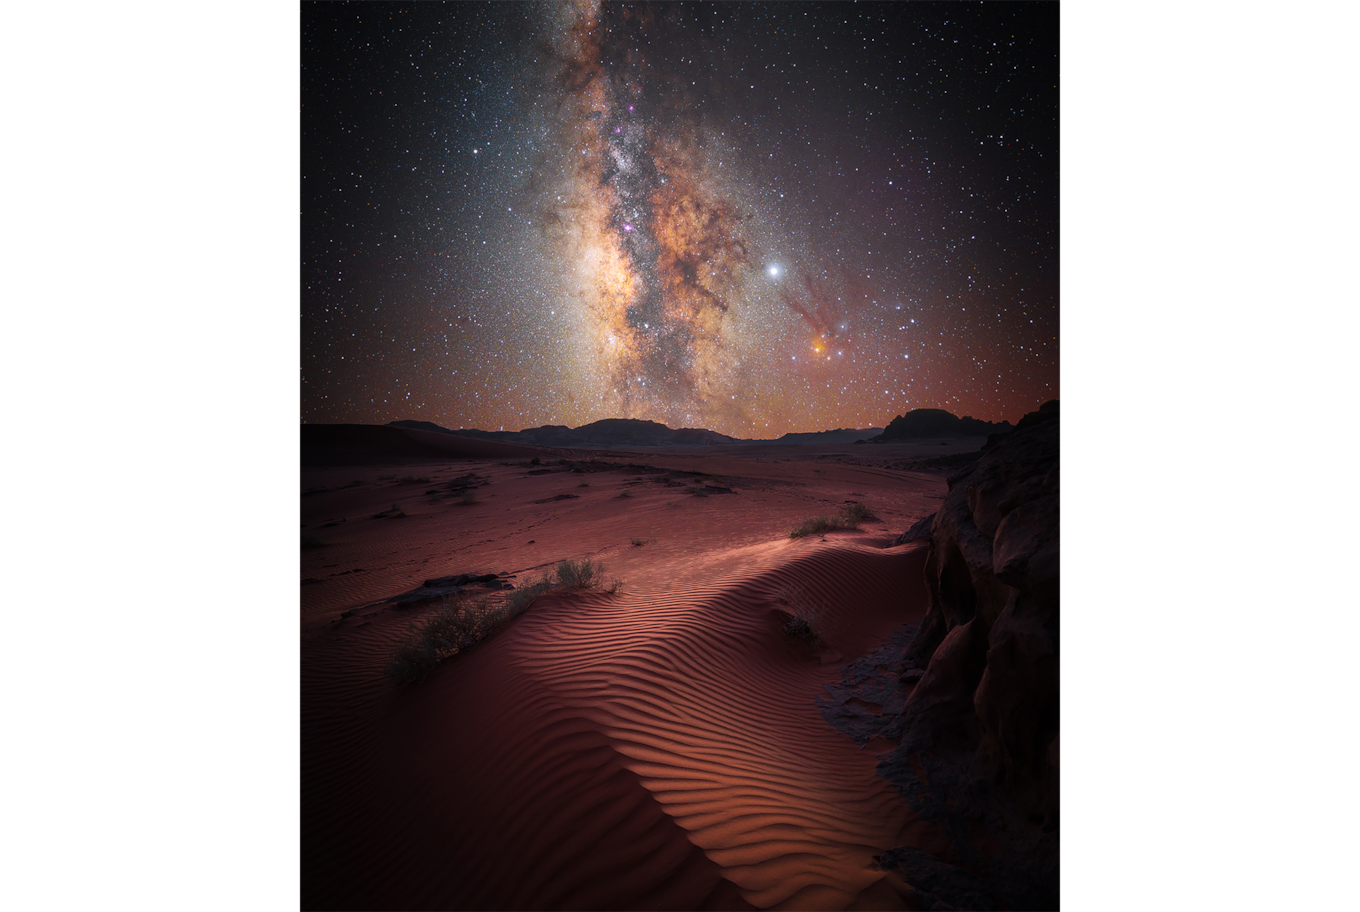 Stefan Liebermann sony alpha 7m3 milky way above the desert